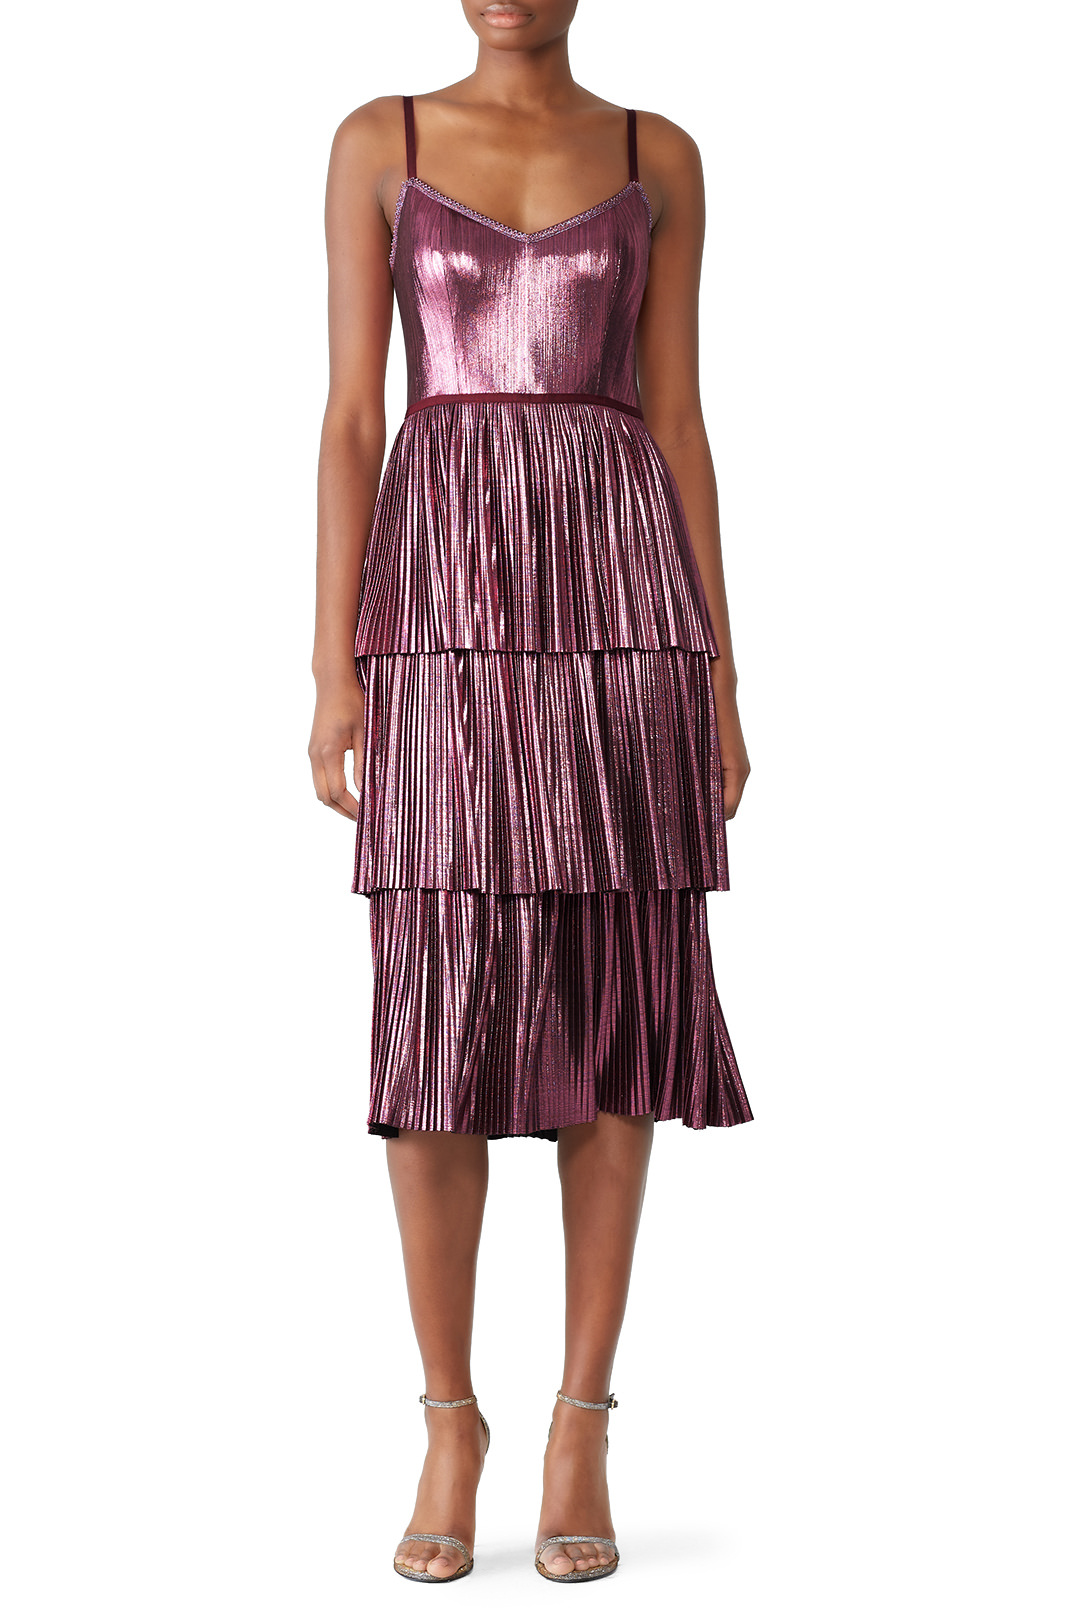 Marchesa Notte Lilac Pleated Lame Dress - This is a newly added style and I'm super into it!